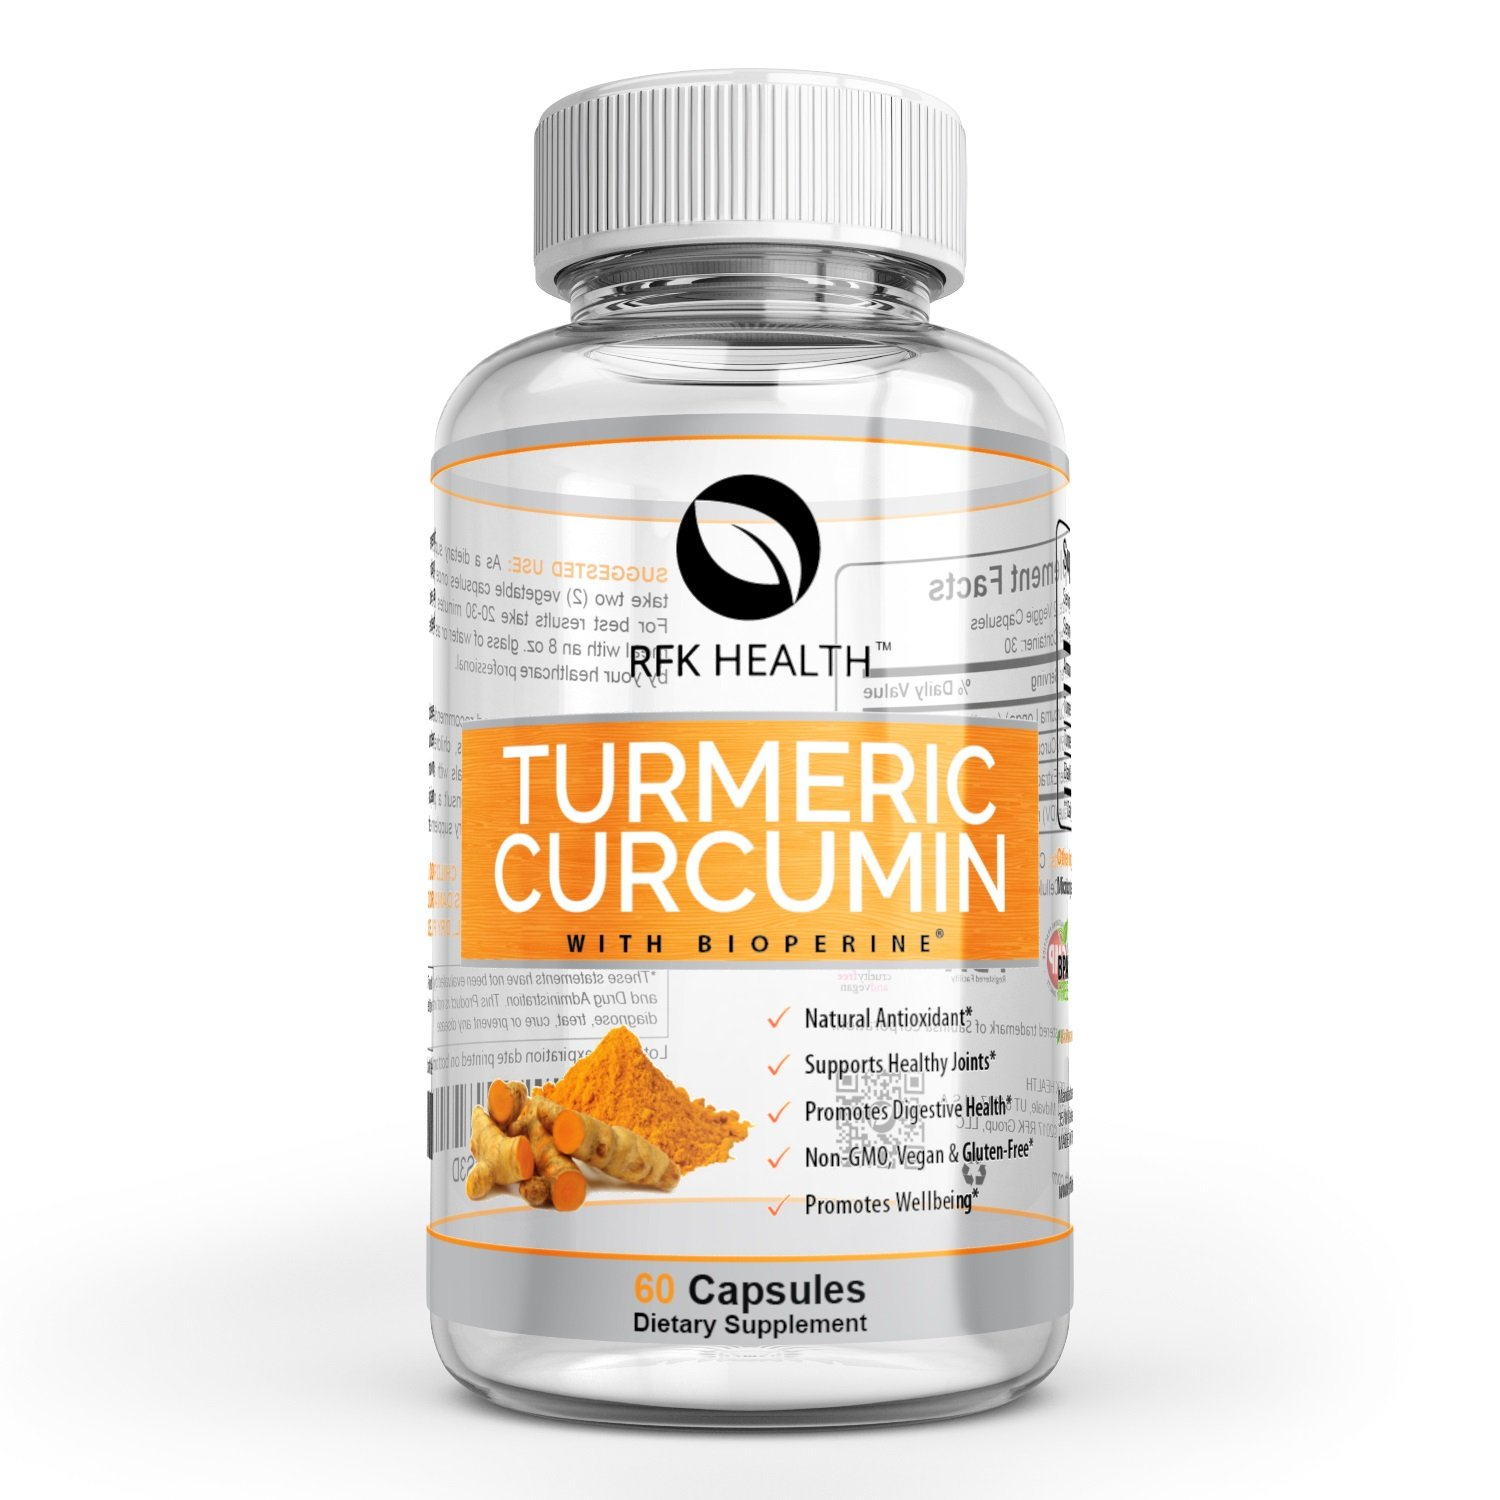 All-New Turmeric Curcumin with BioPerine (Black Pepper) 1300mg. Optimum Pain Relief & Joint Support. Doctor Formulated, Non-GMO, Gluten-Free for All-Ages. Natural Anti-Inflammatory (1 Month Supply)